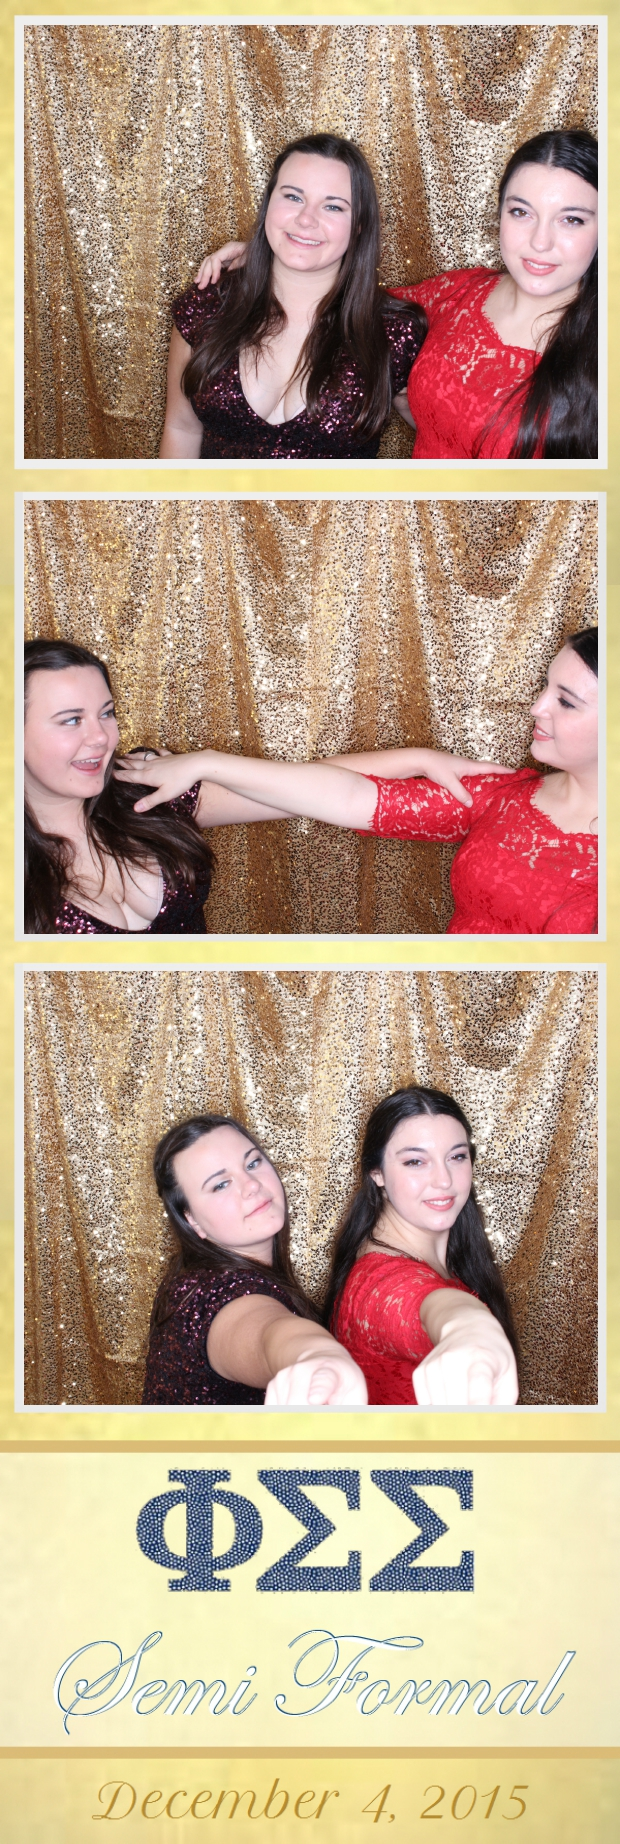 Guest House Events Photo Booth Phi Sigma Sigma Semi Formal (60).jpg